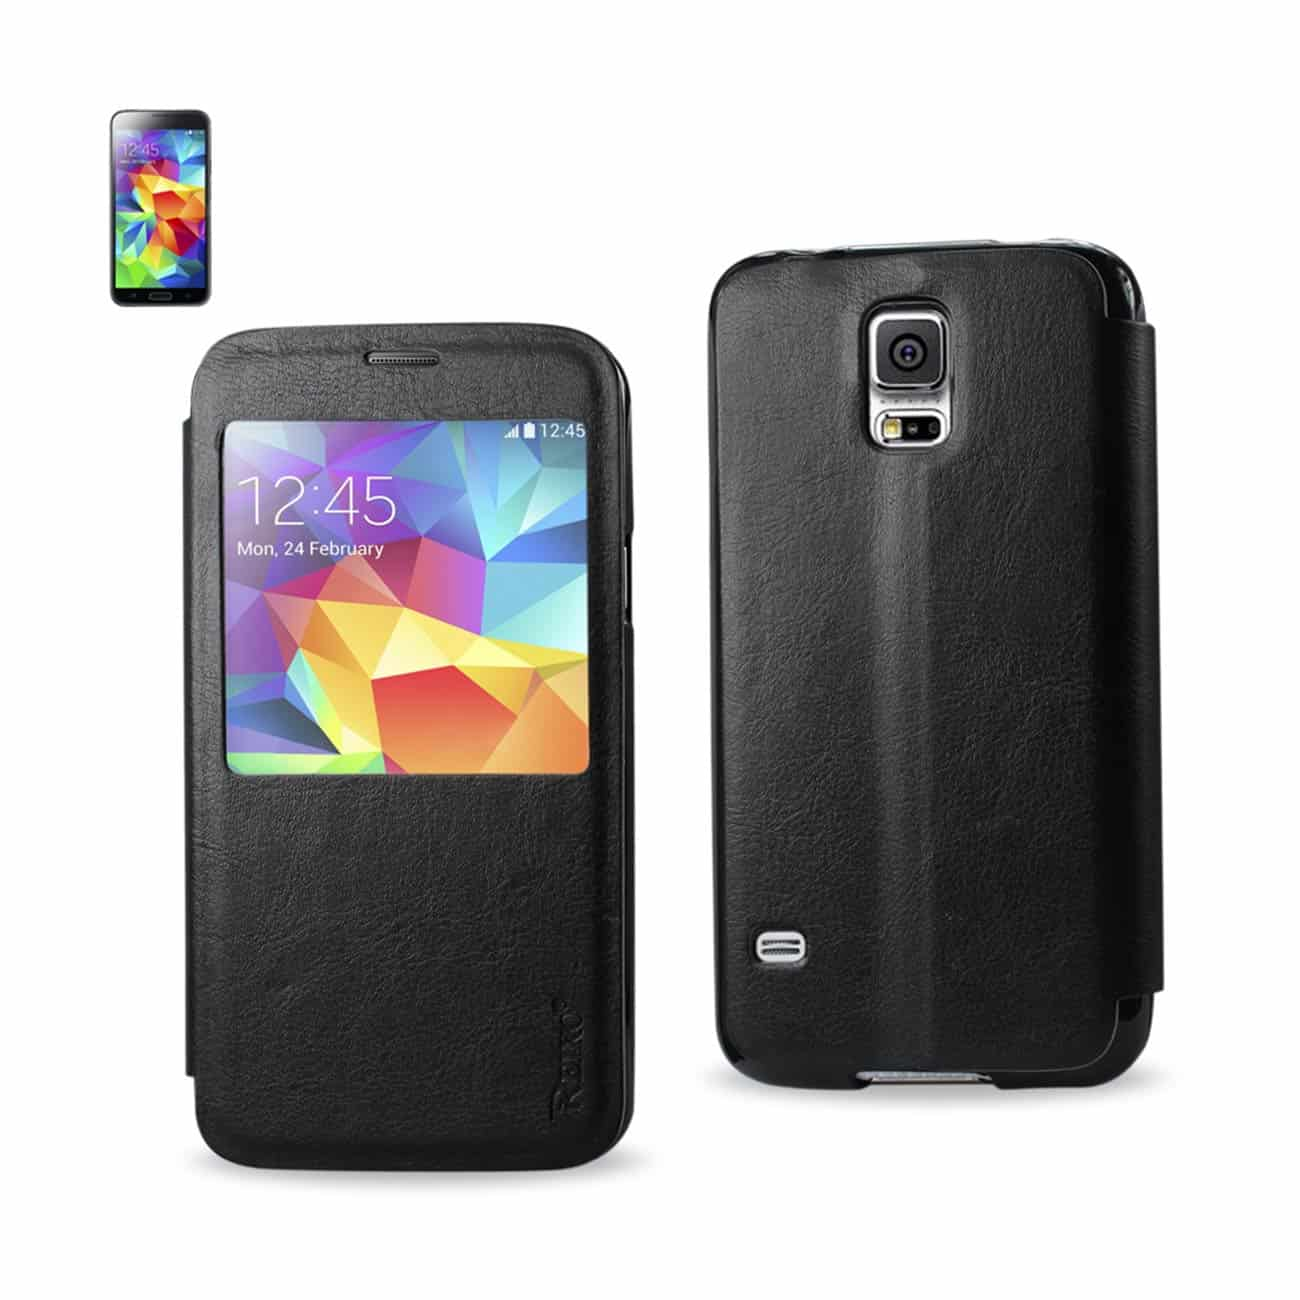 SAMSUNG GALAXY S5 SMART WINDOW FLIP CASE IN BLACK